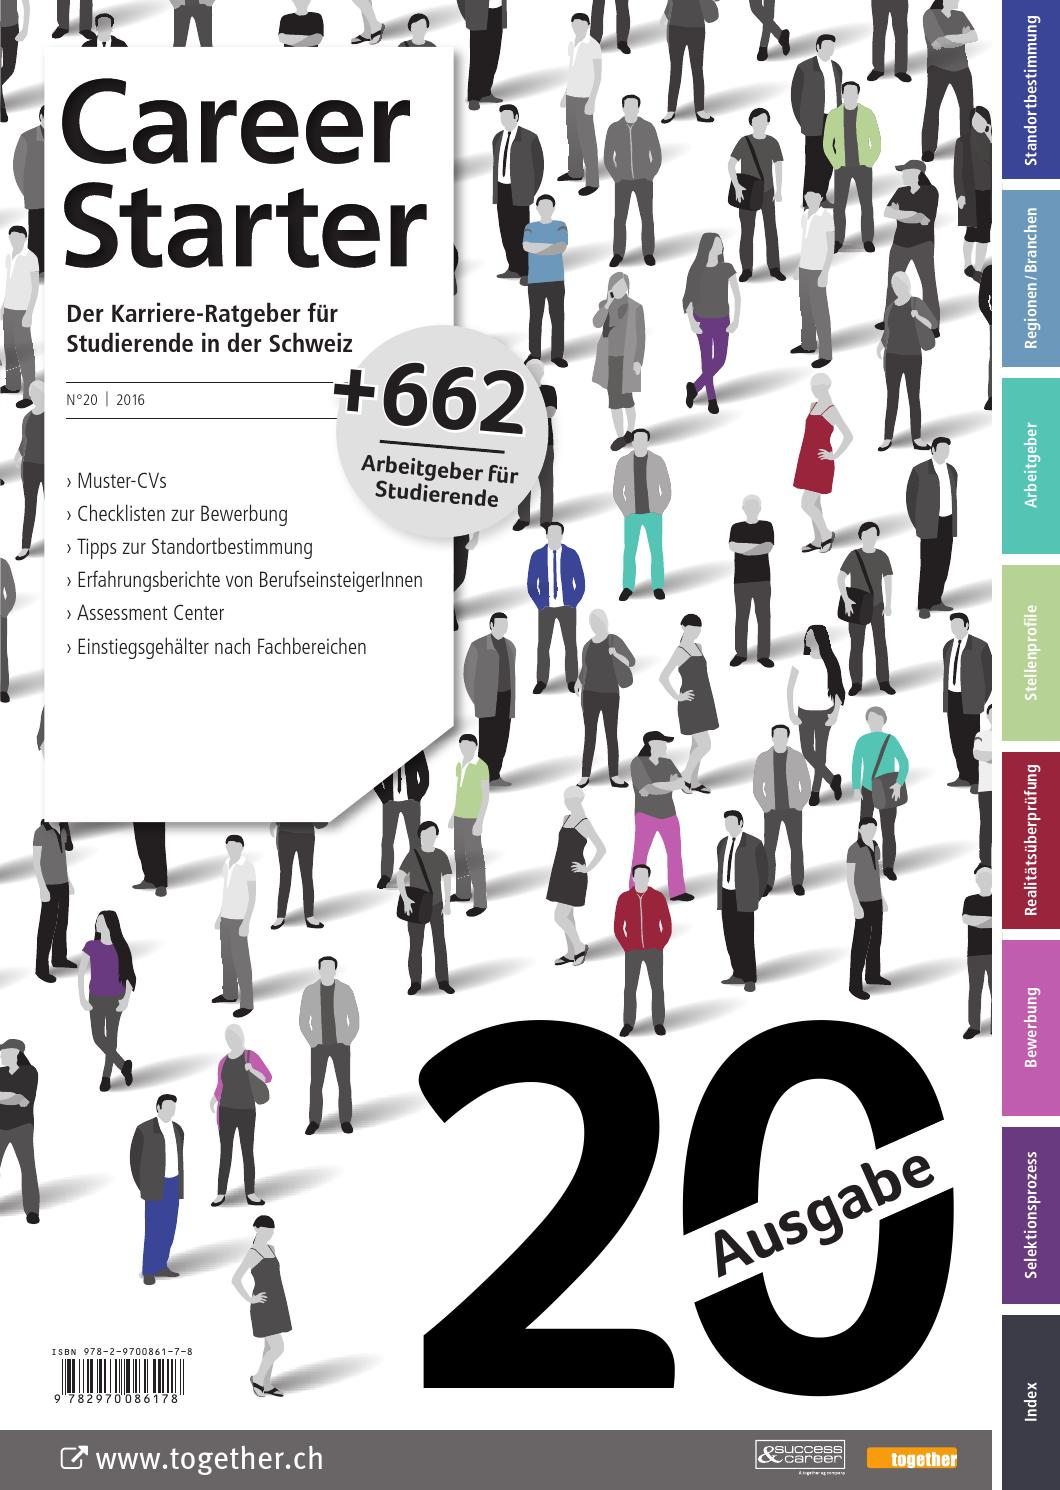 Career Starter - Nr. 20 - Deutsche Ausgabe - 2016 by together ag - issuu